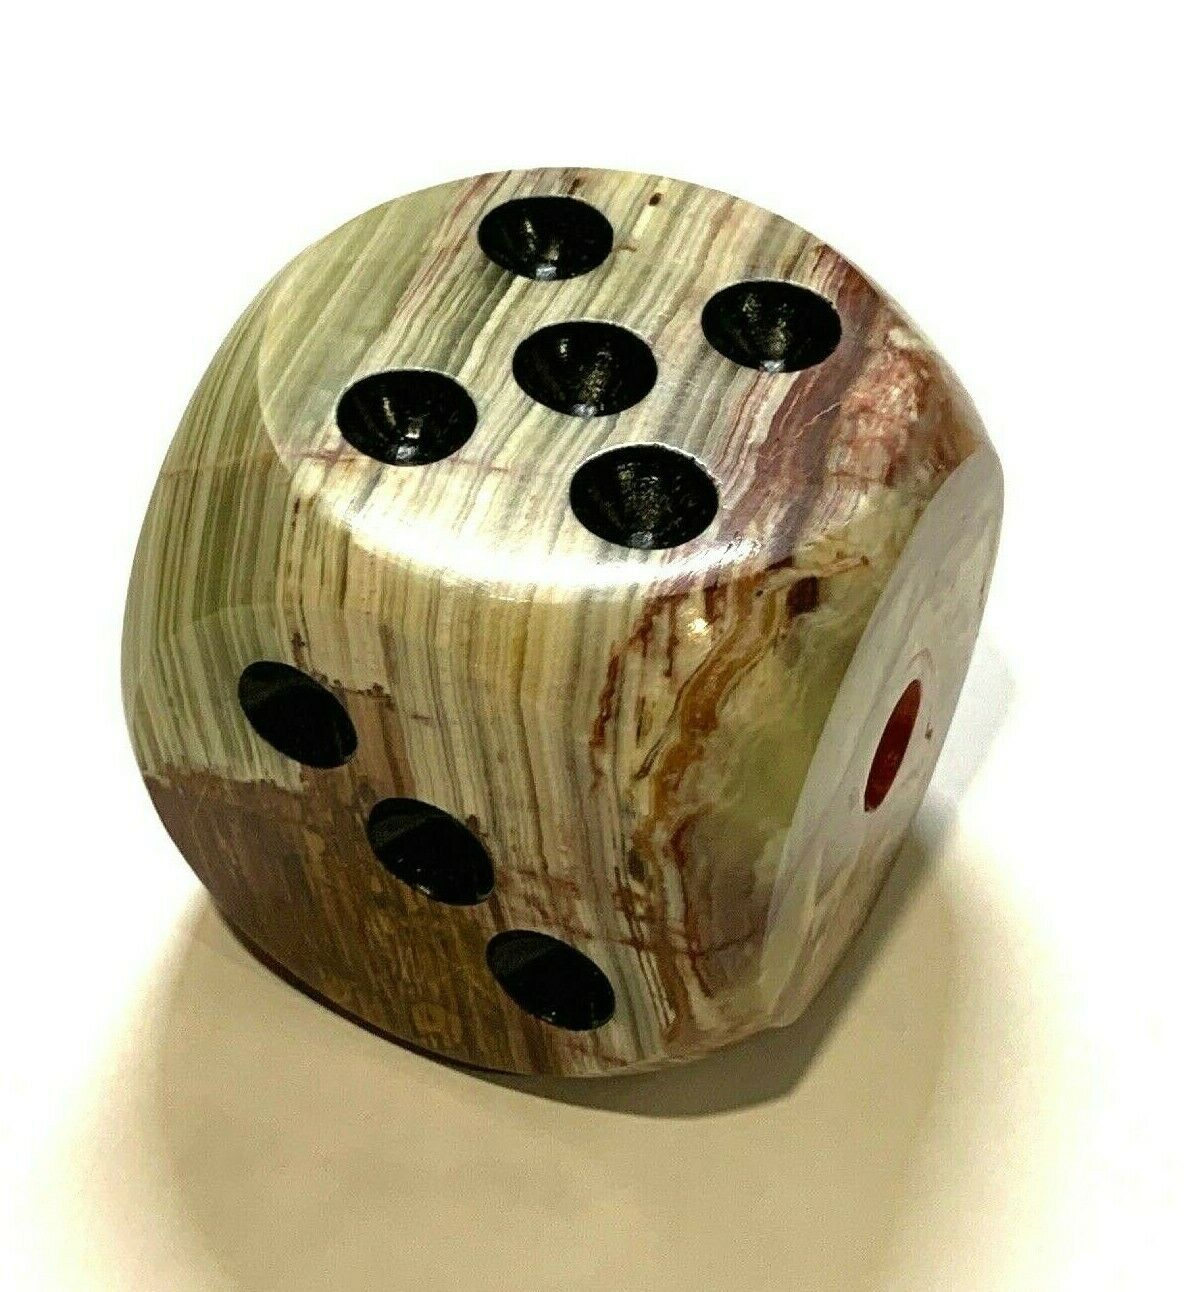 Large Onyx Dice Home Decor Natural Stone - $29.25